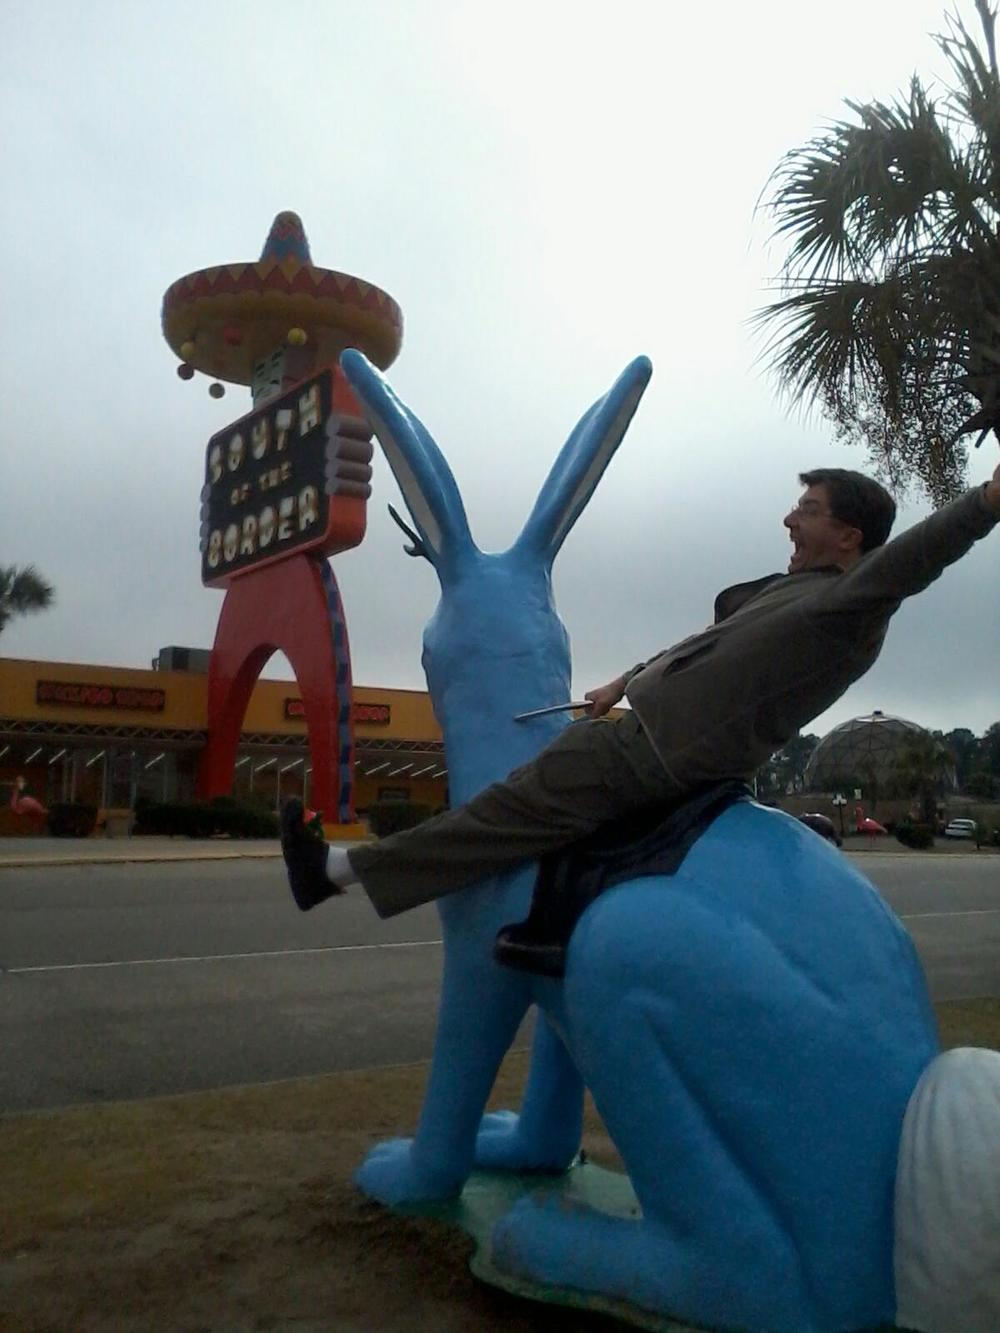 Jackalope, South of the Border, 2013